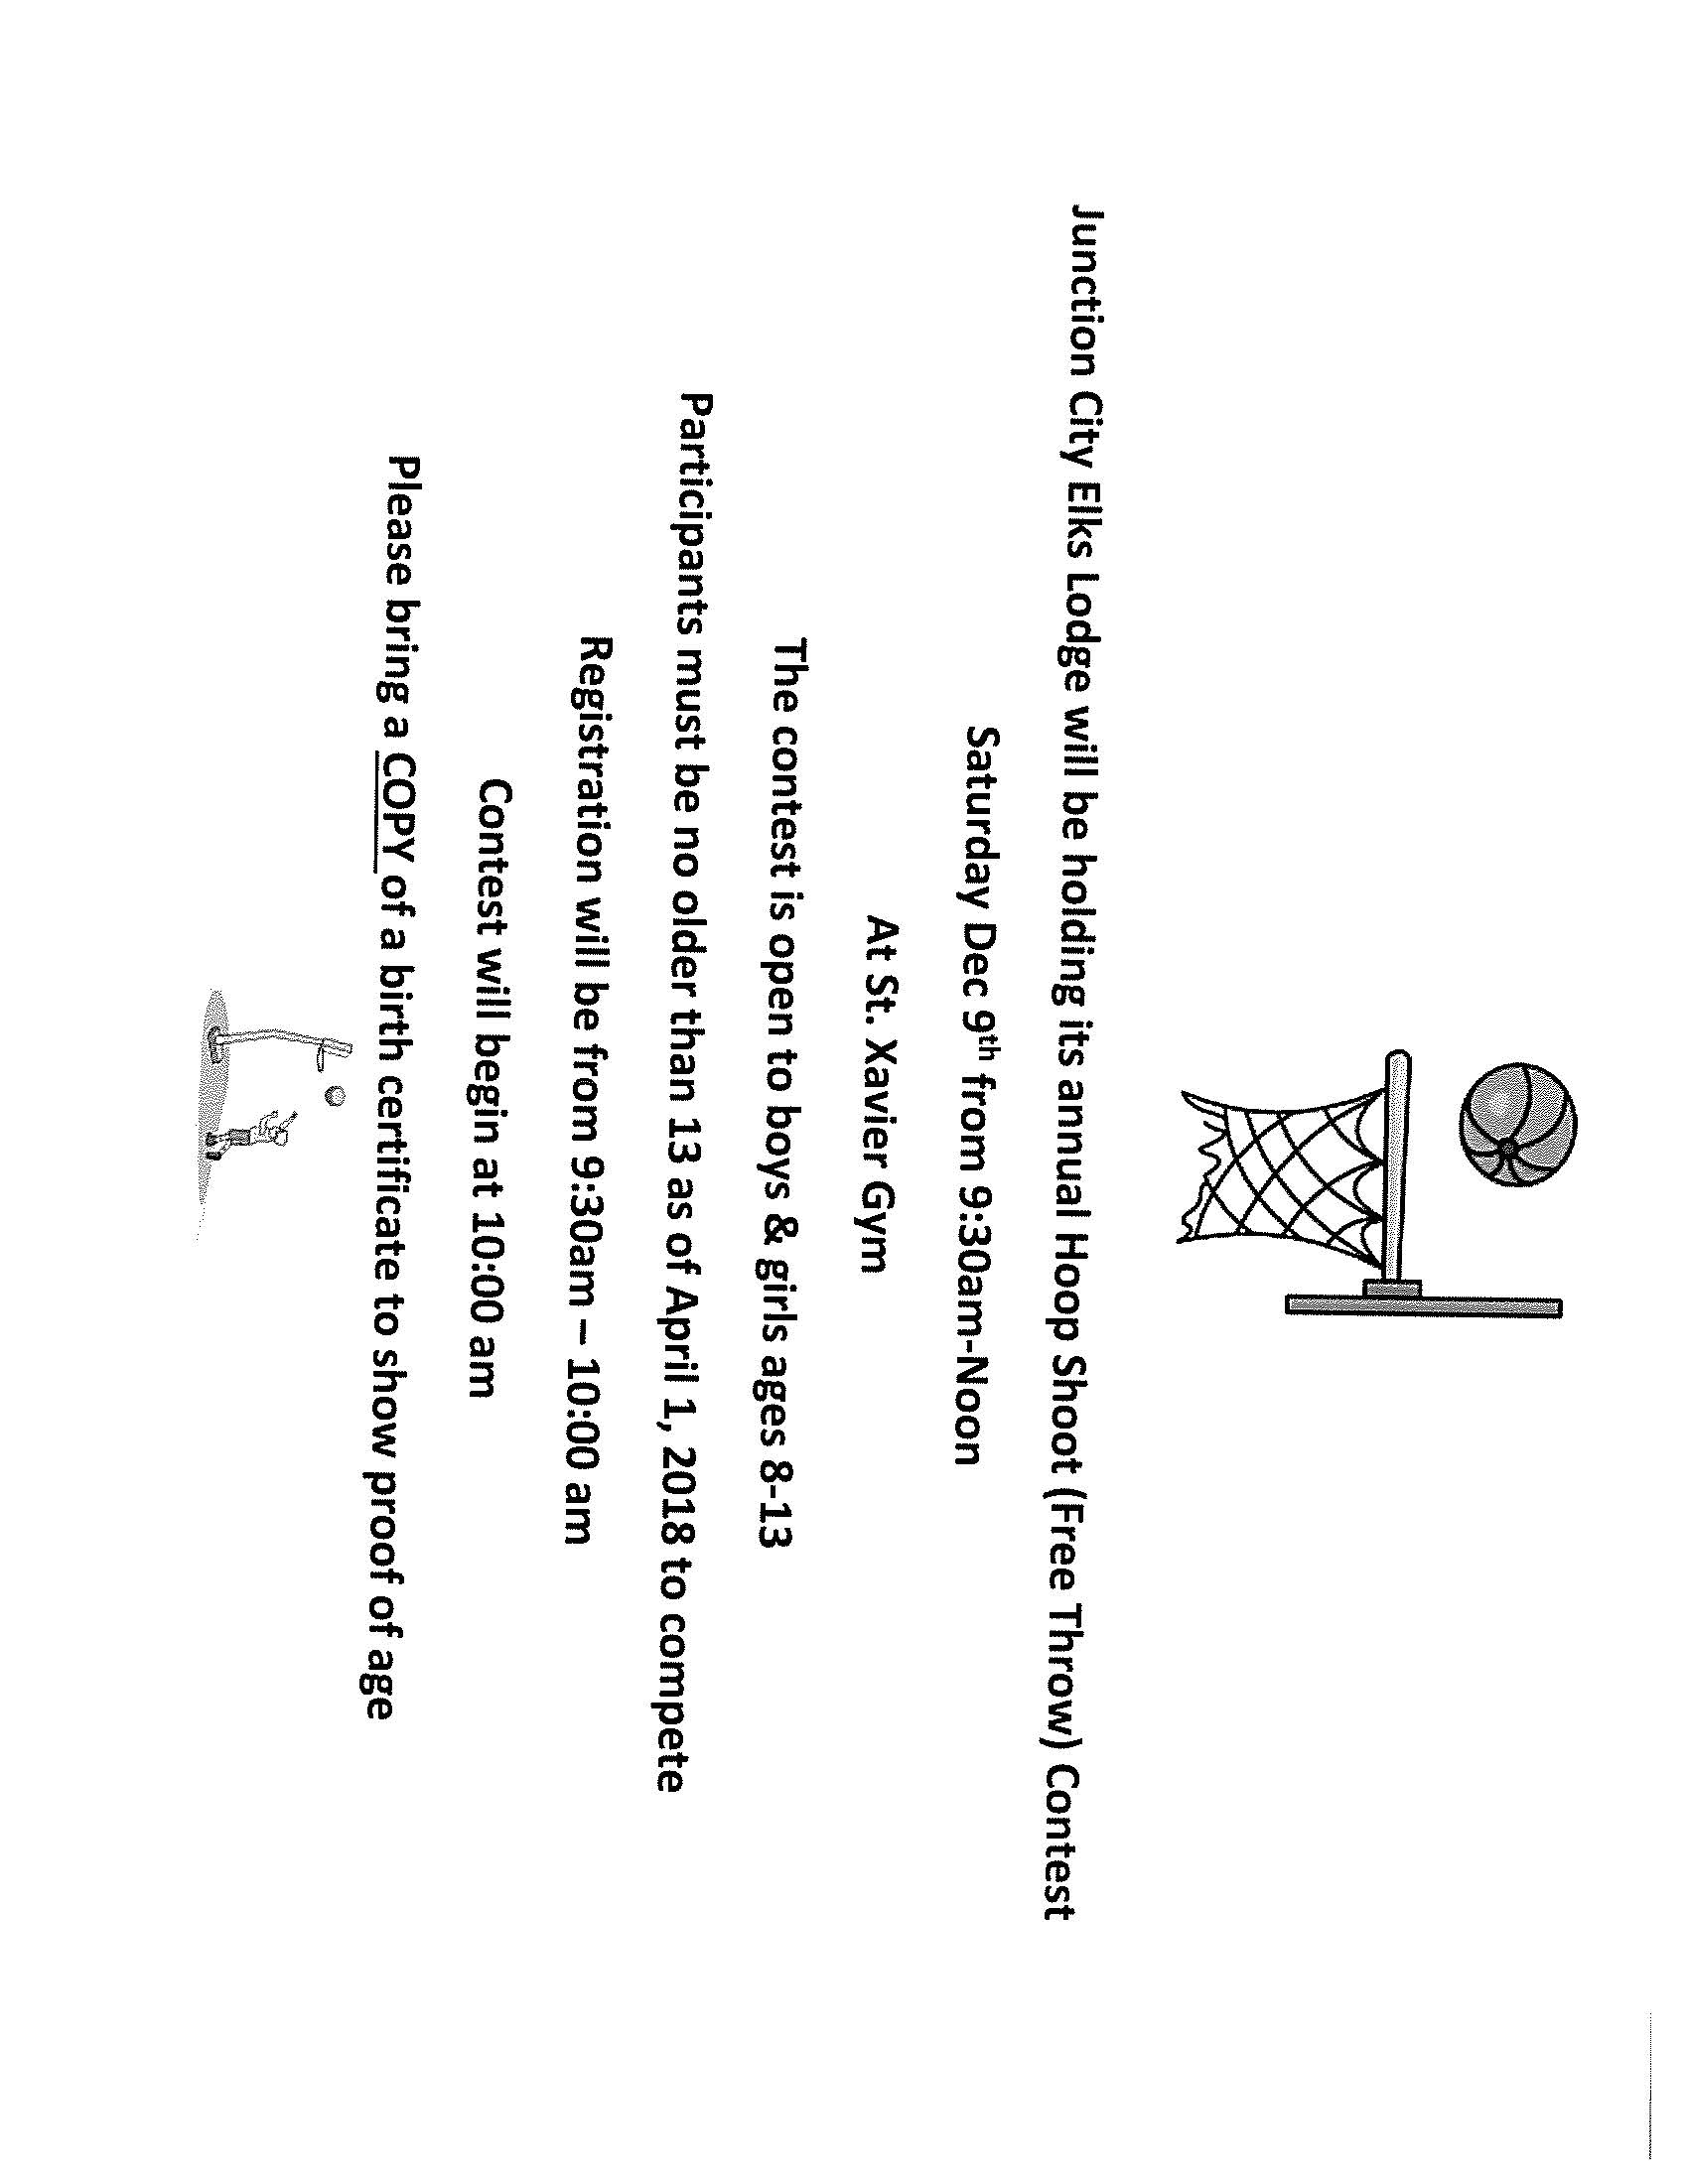 Hoop Shoot Flyer